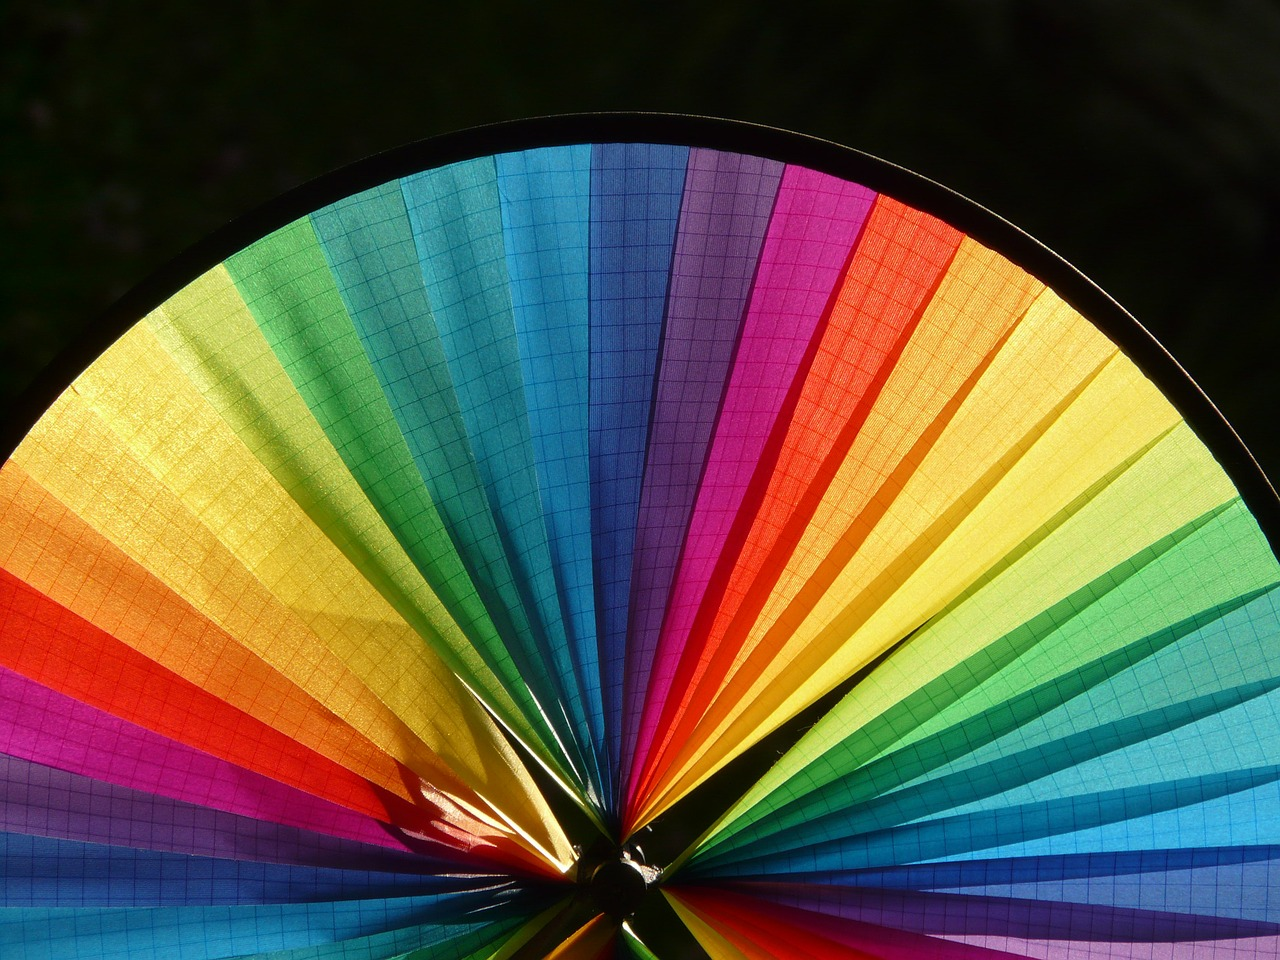 pinwheel wind colorful free photo